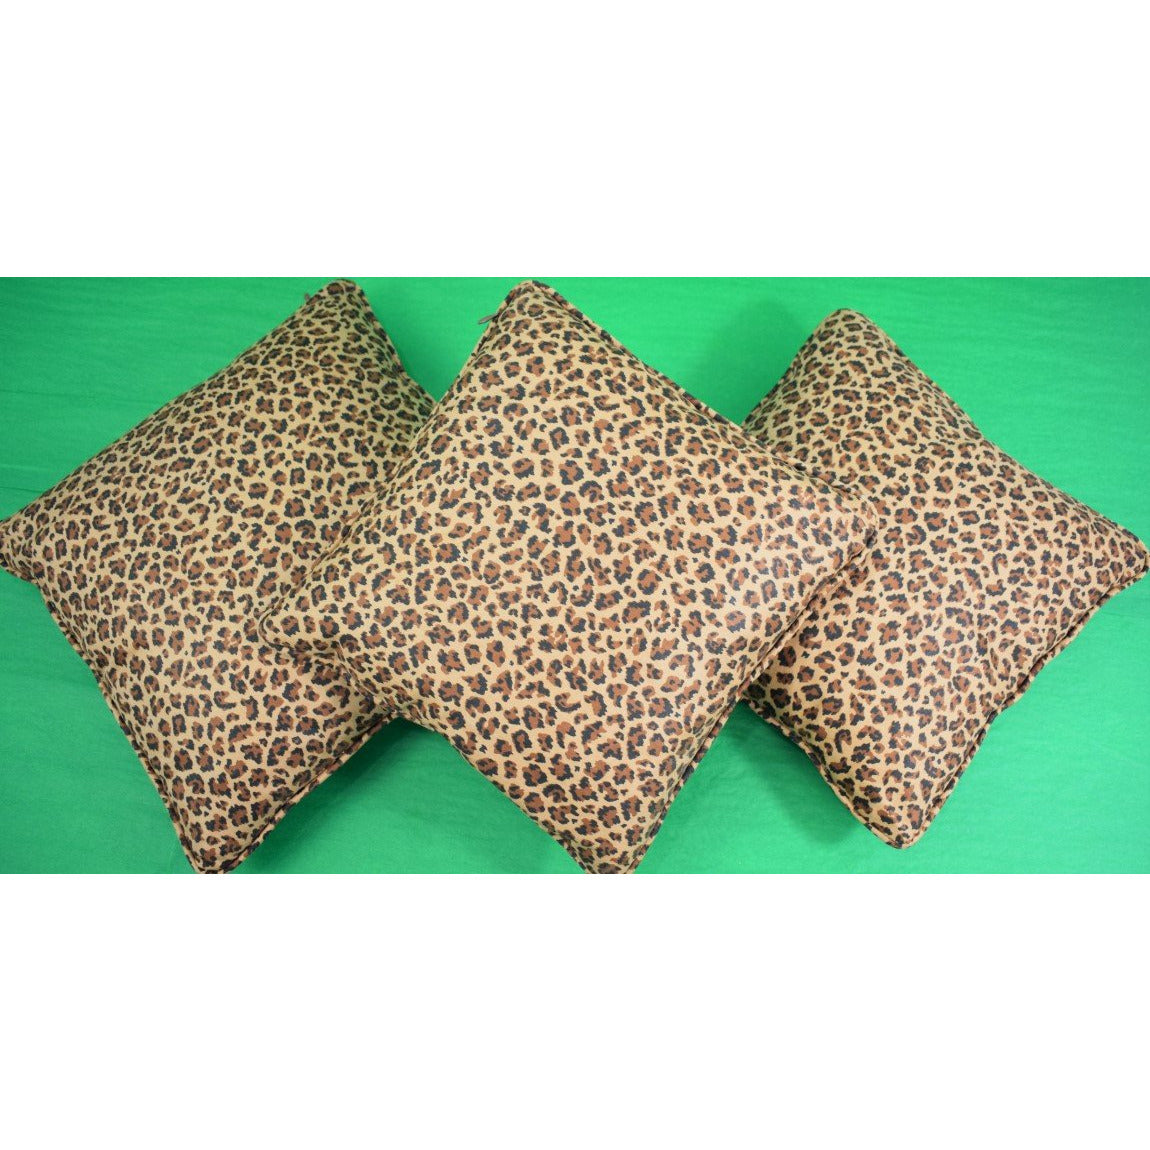 Set of 3 Leopard Print Pillows